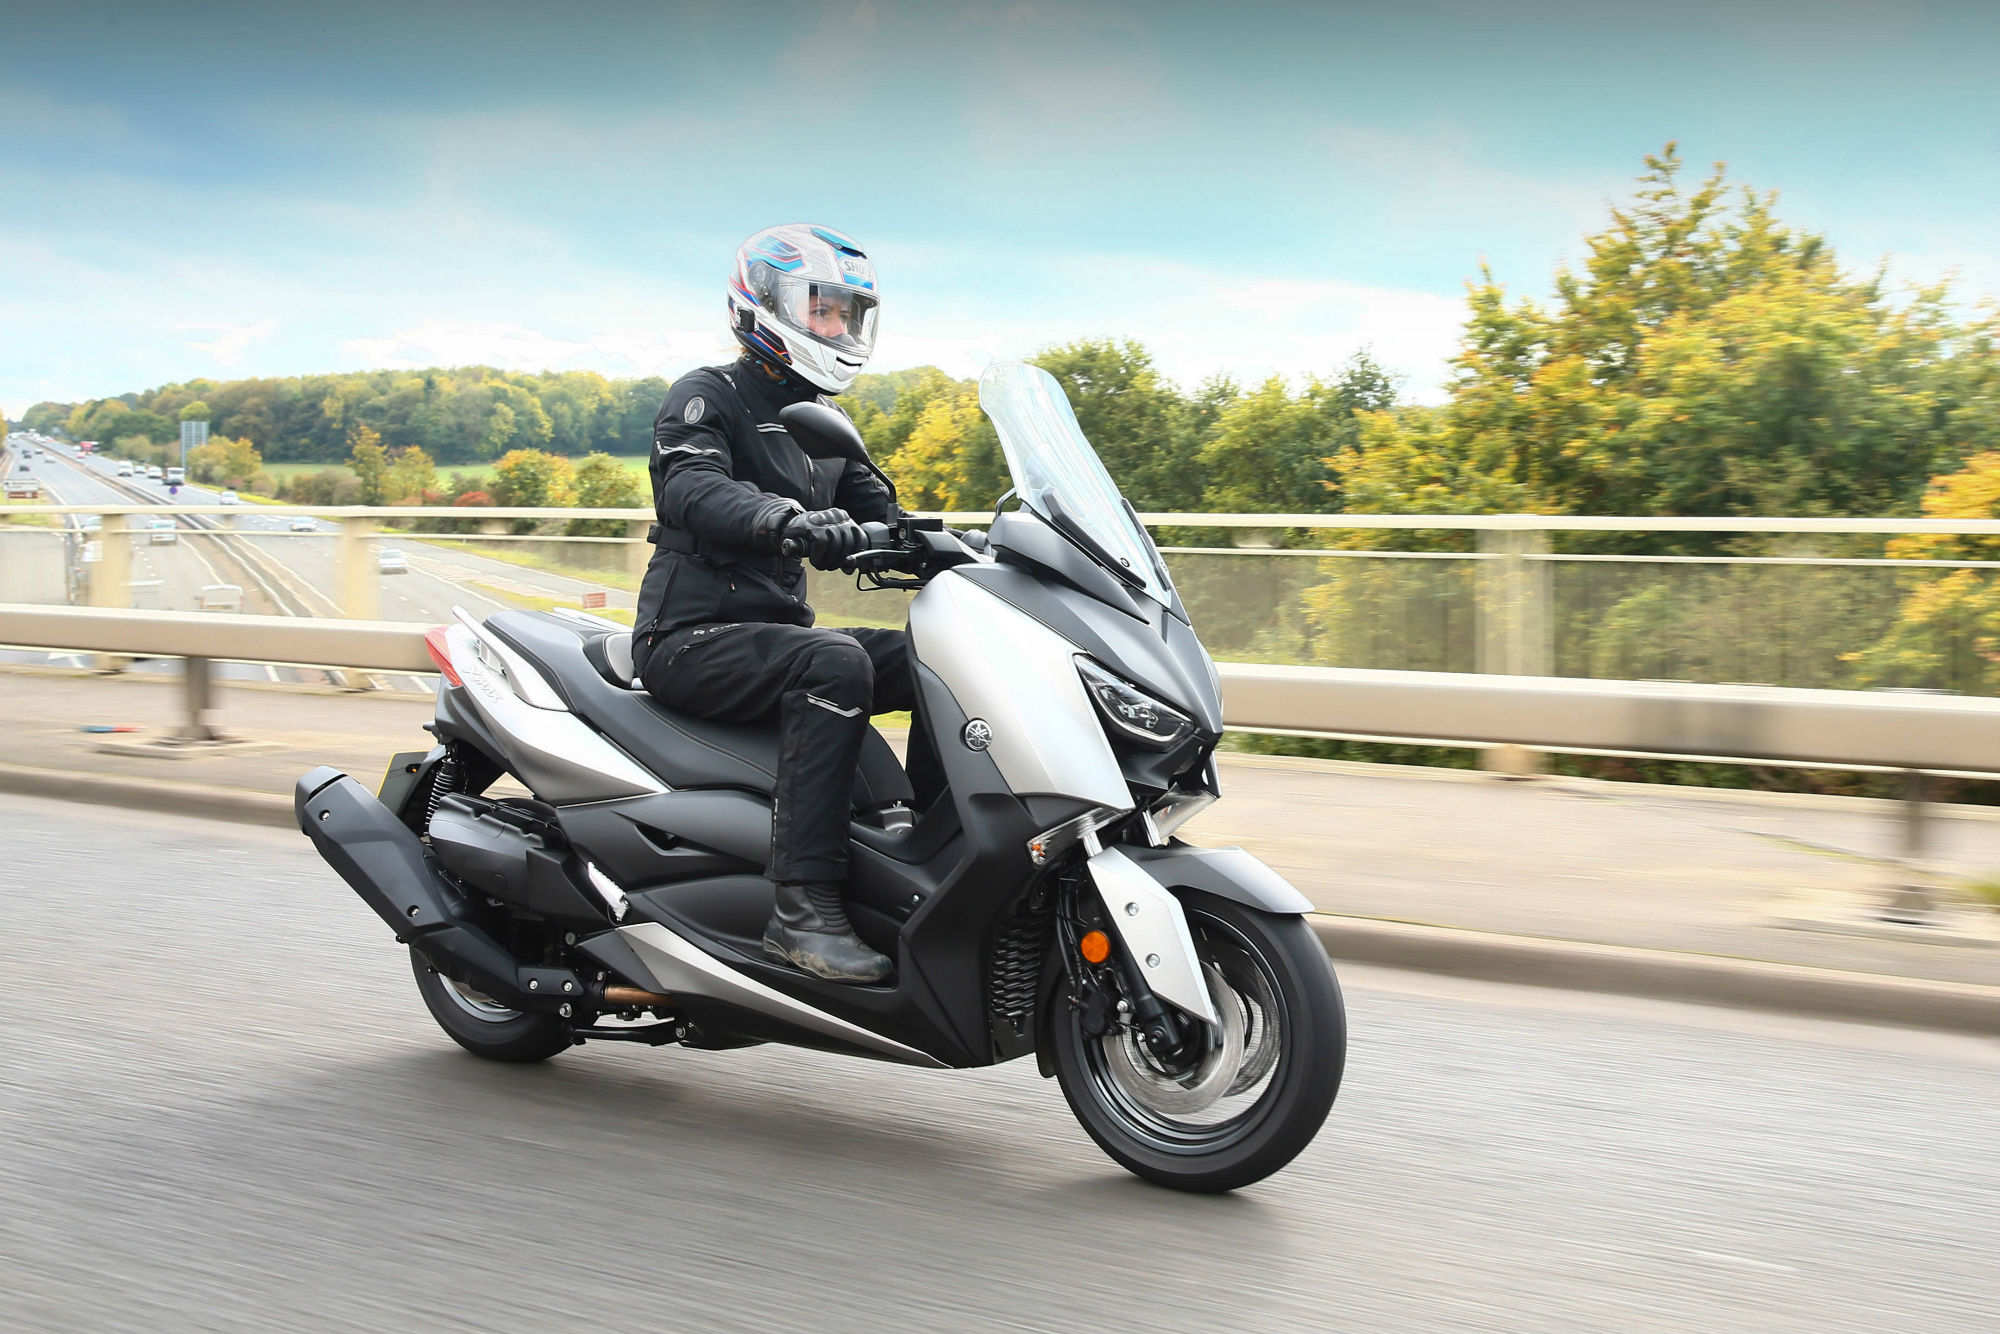 2018 Yamaha Xmax 300 Specs, Price and Reviews